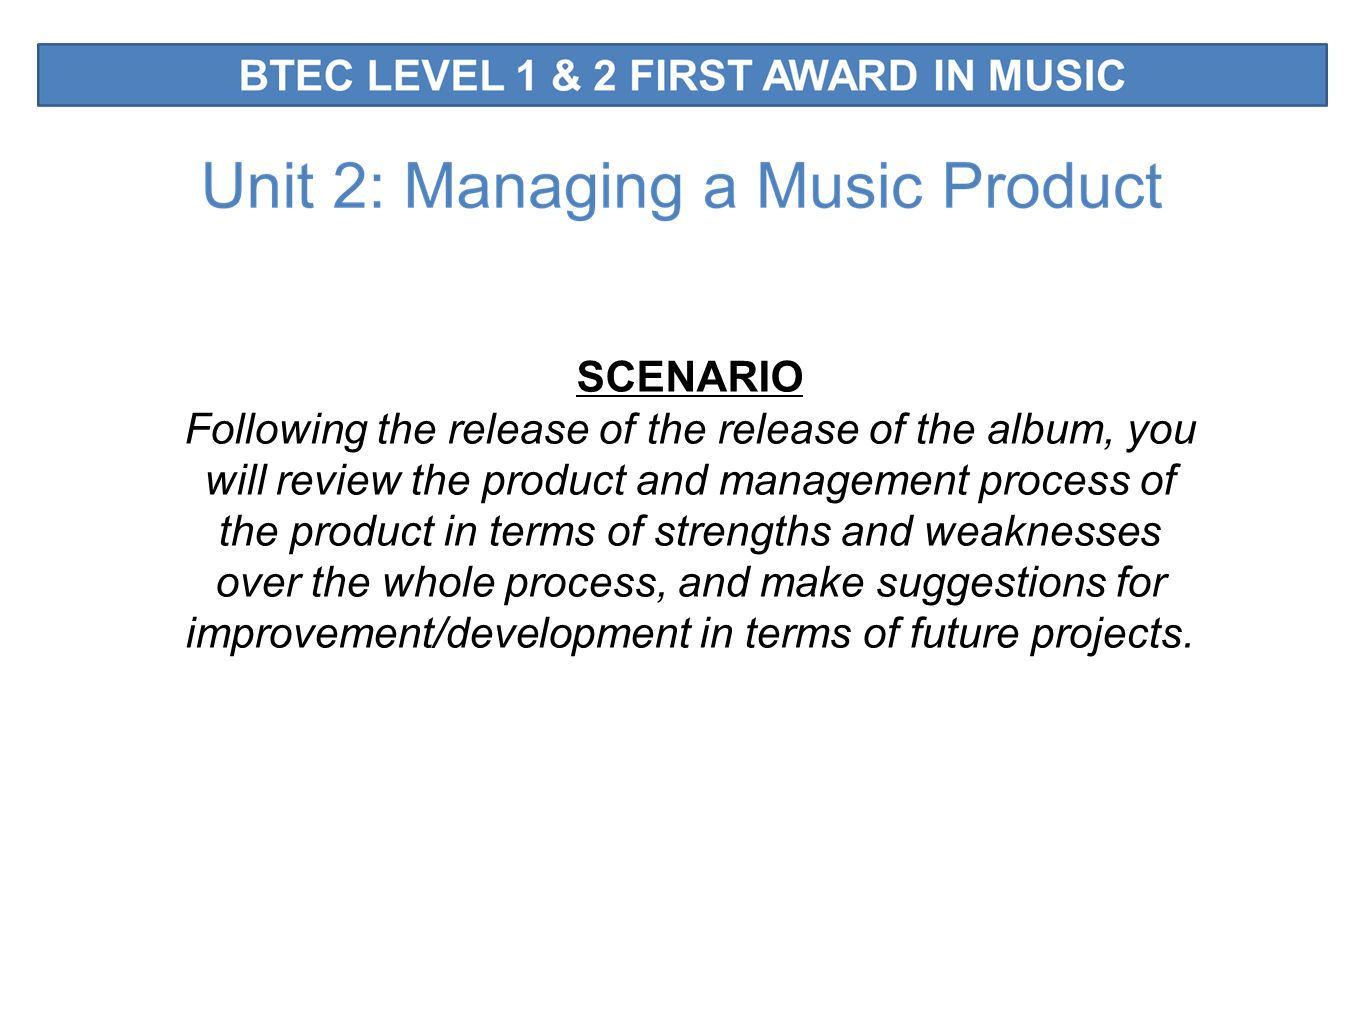 SCENARIO Following the release of the release of the album, you will review the product and management process of the product in terms of strengths and weaknesses over the whole process, and make suggestions for improvement/development in terms of future projects.